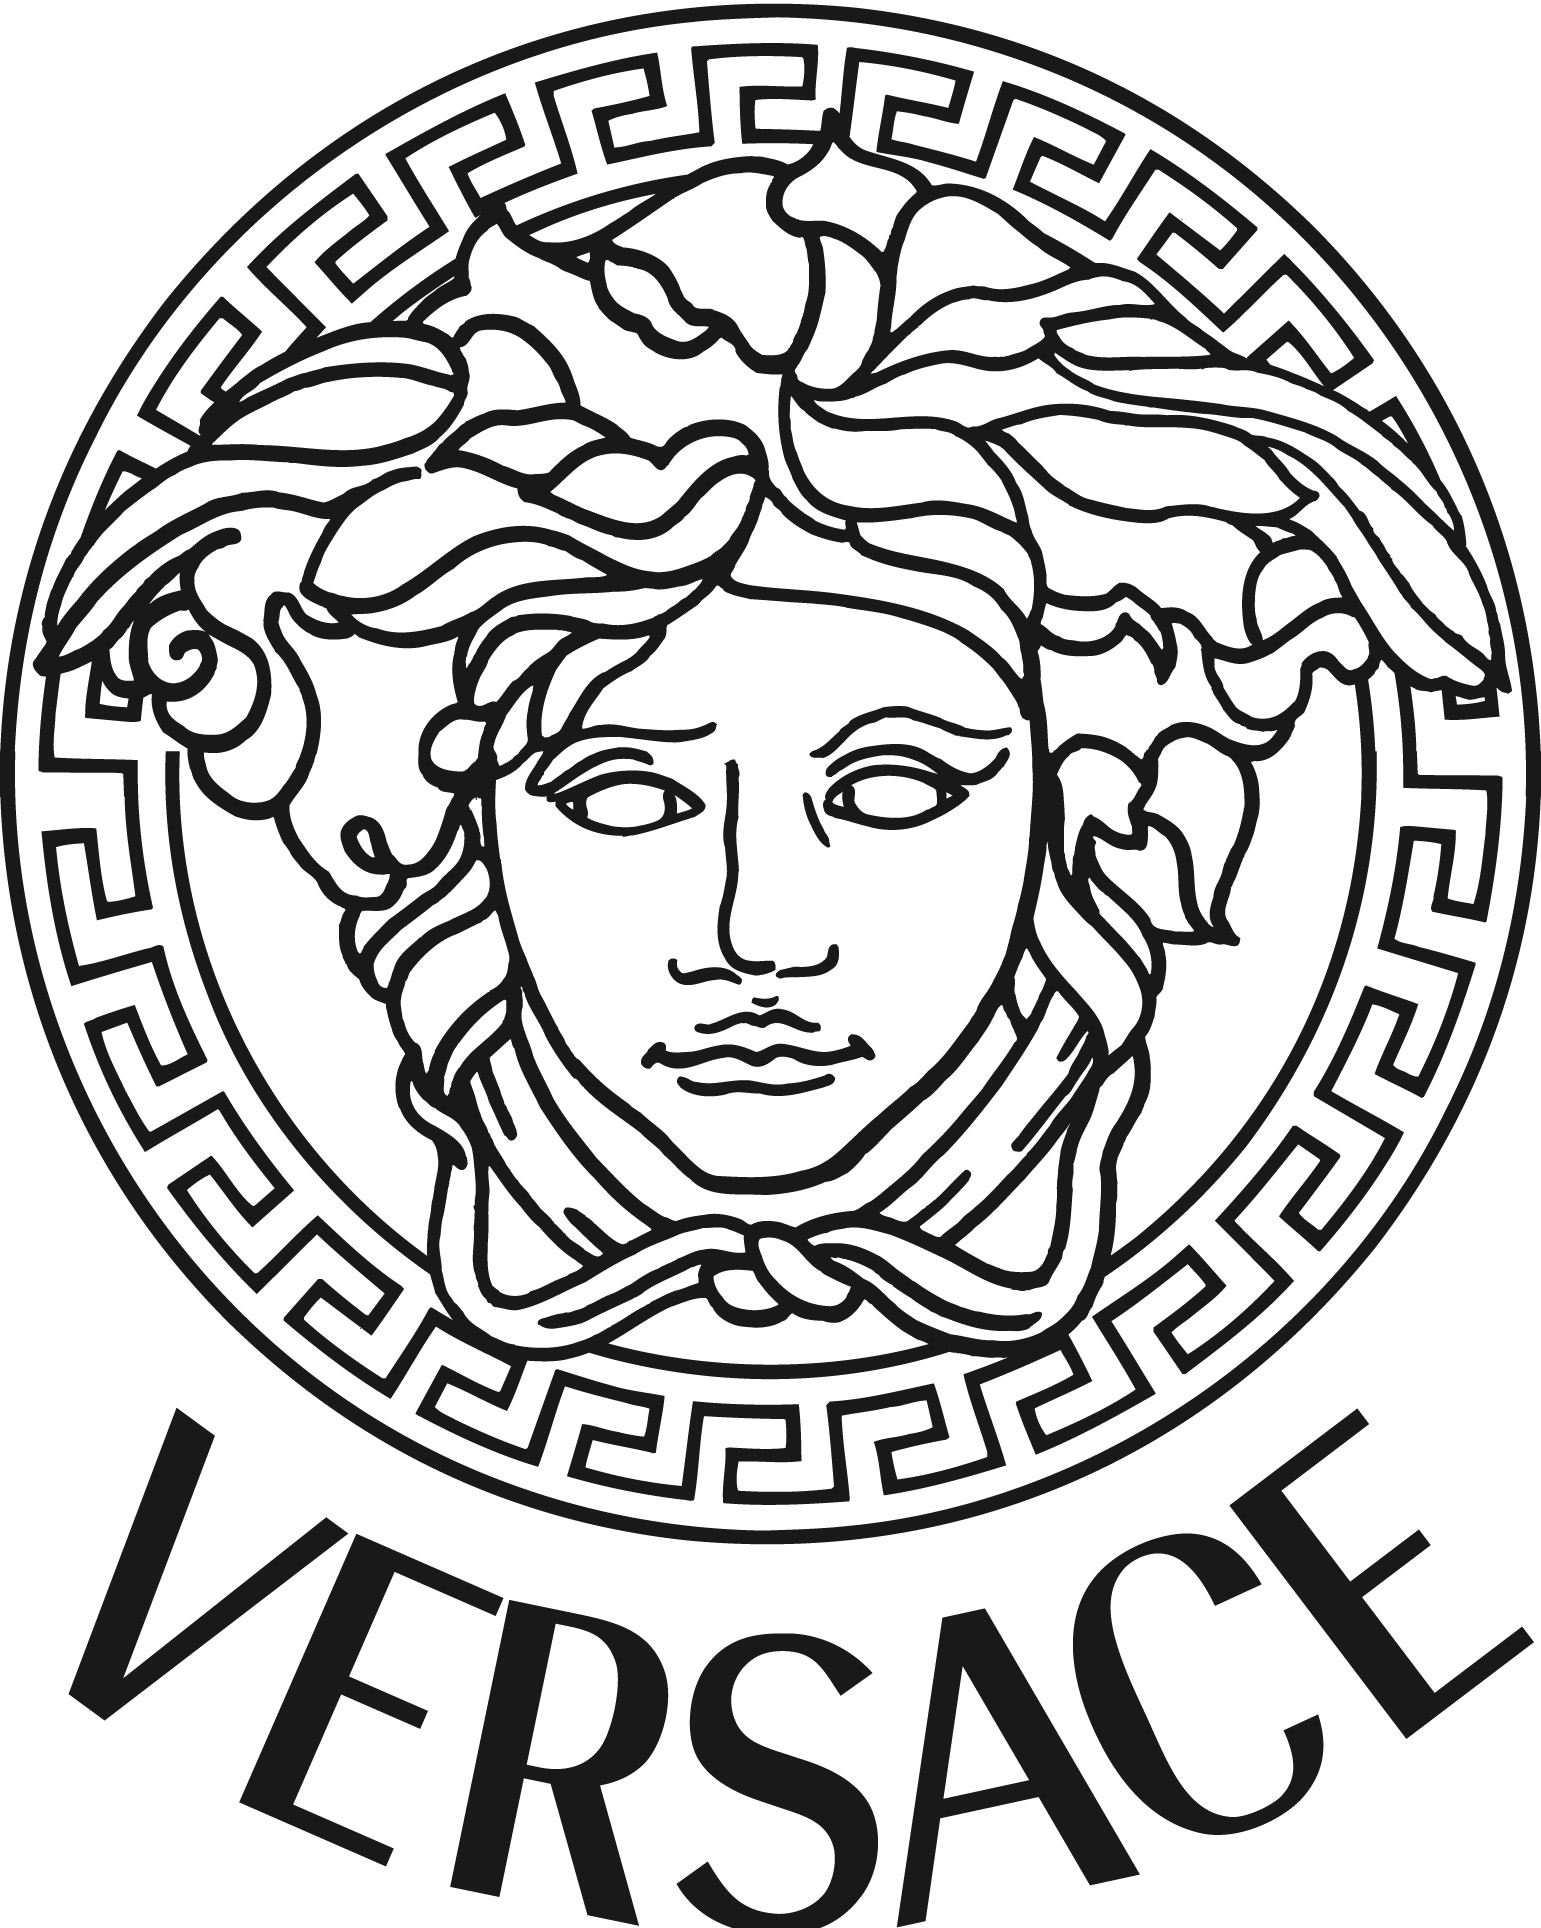 {'liked': 0L, 'description': u'Gianni Versace S.p.A. usually referred to as Versace, is an Italian fashion company and trade name founded by Gianni Versace in 1978.', 'fcount': 10160, 'logo': u'https://d1lq6ohuxk085y.cloudfront.net/designer/versace-1470104219', 'viewed': 45645L, 'category': u'p', 'name': u'VERSACE', 'url': 'VERSACE', 'locname': u'VERSACE', 'mcount': 7764, 'haswebsite': True}